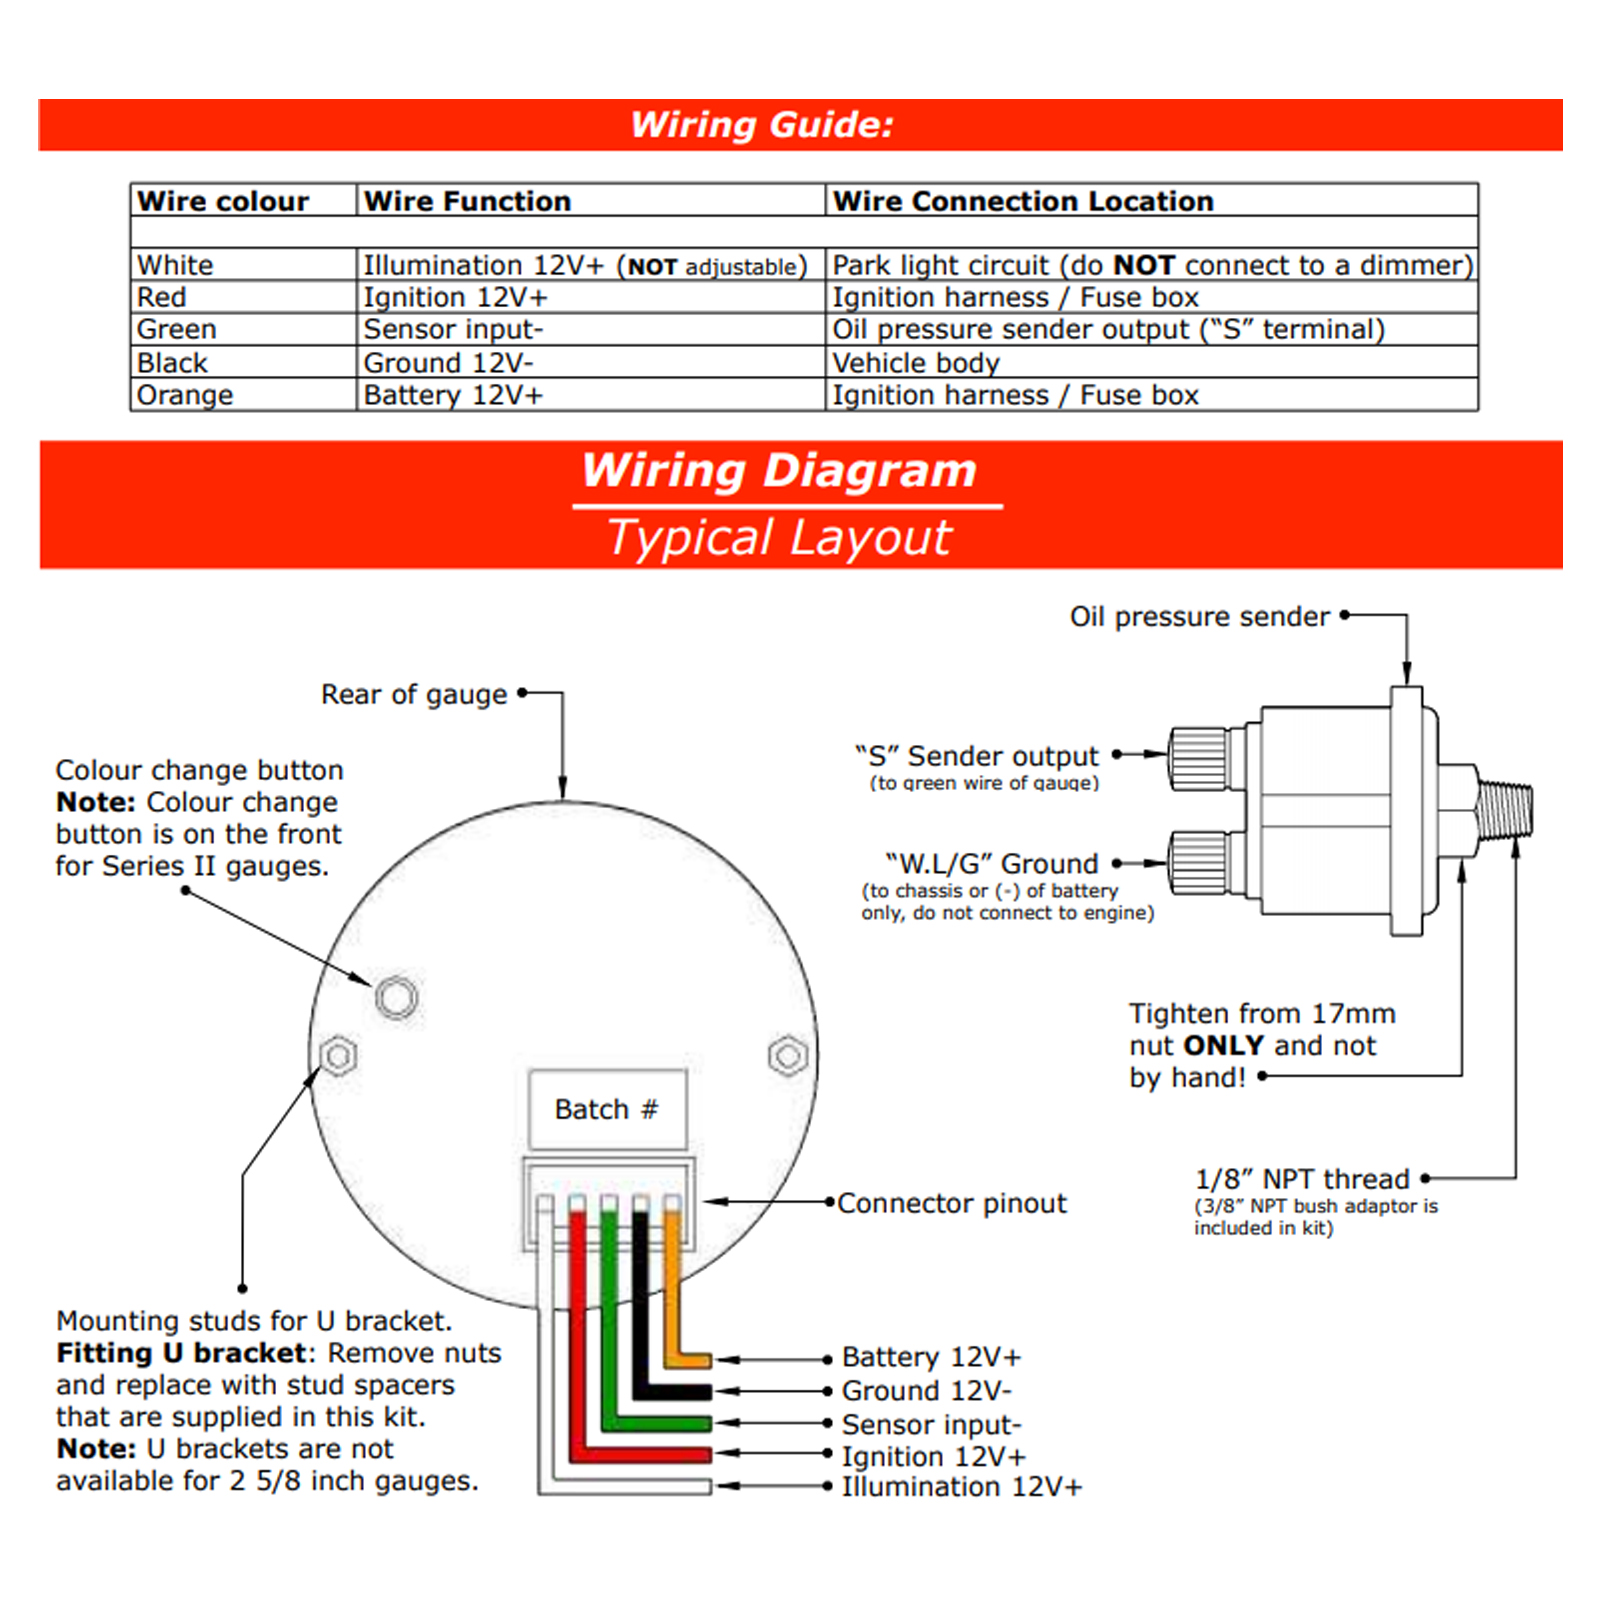 hight resolution of voltmeter gauge wiring on car trusted wiring diagram rh dafpods co on timing light wiring diagram